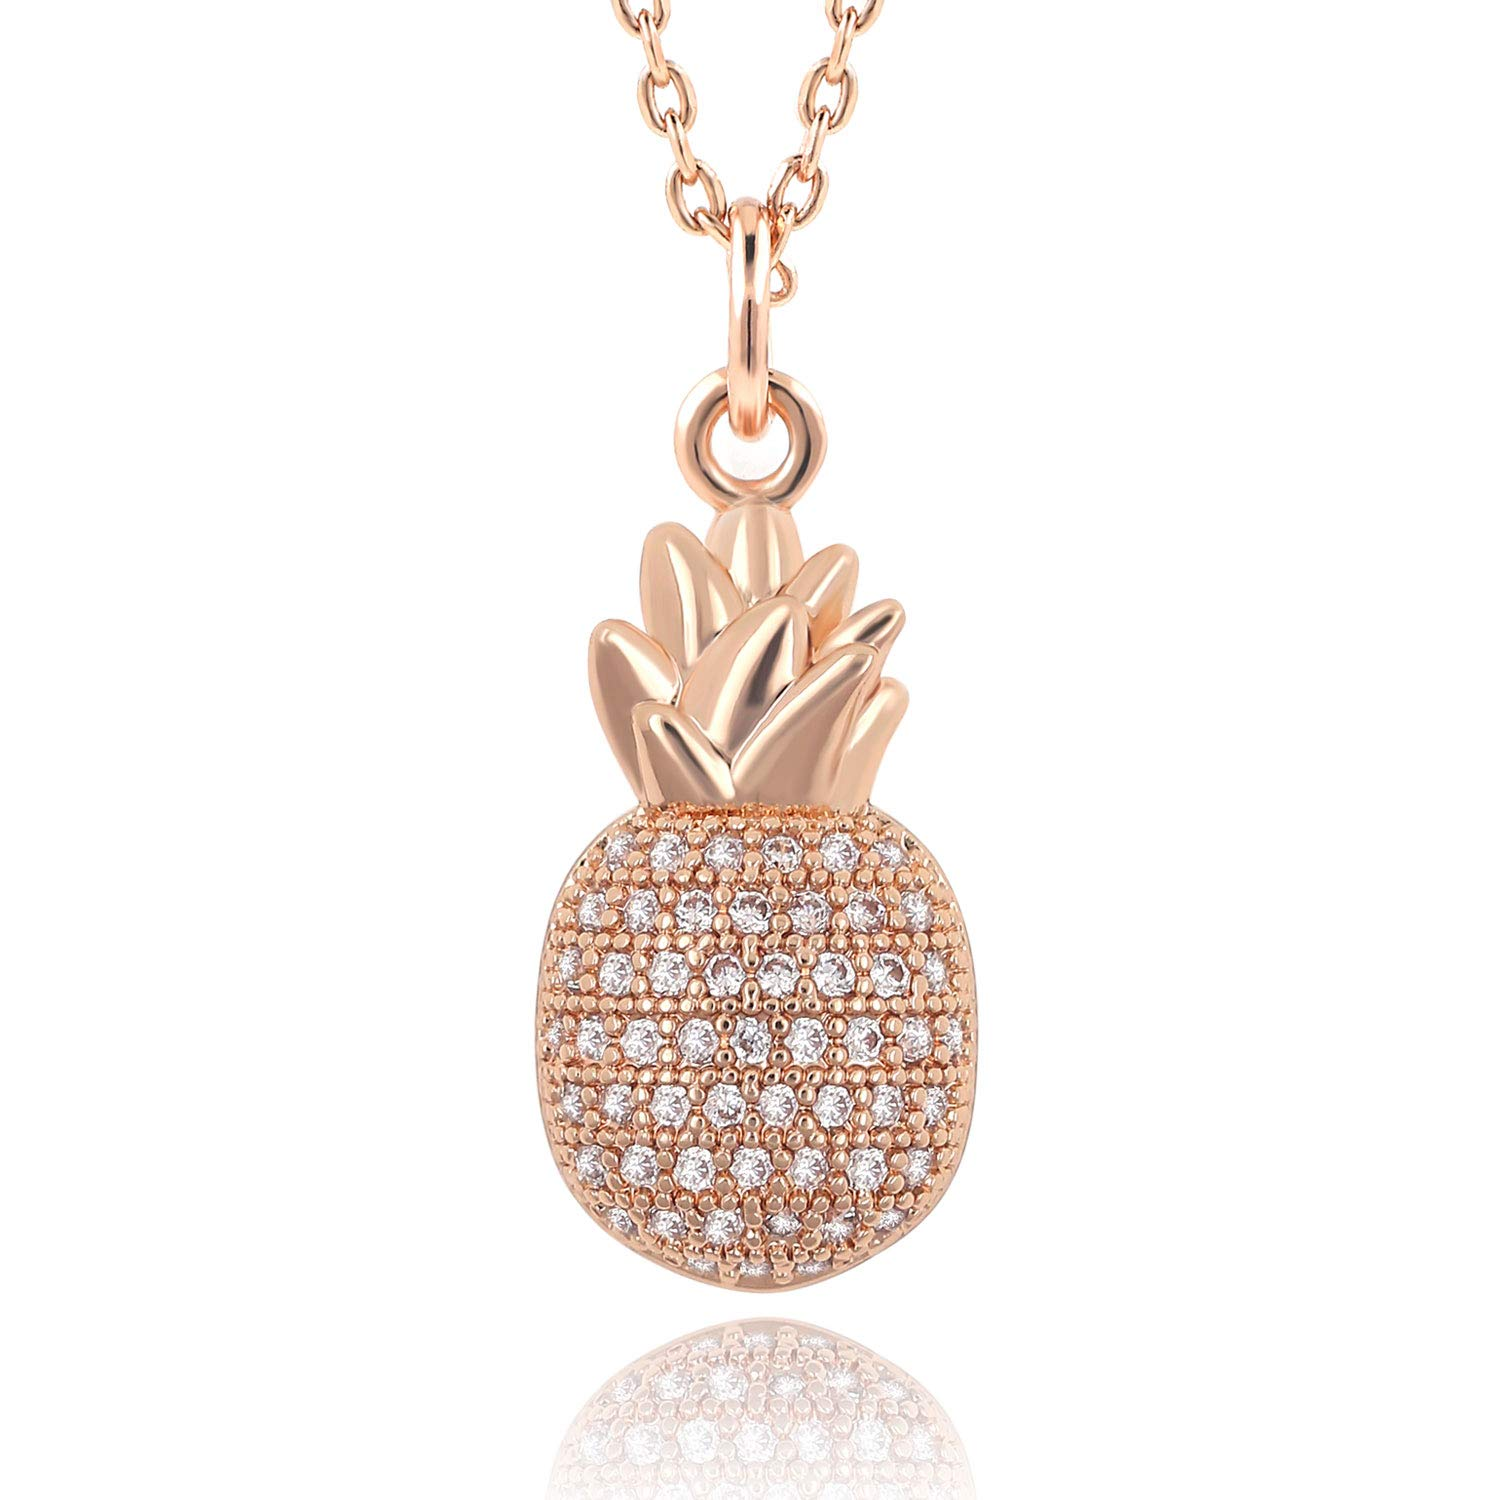 """Lancharmed Tropical Pineapple Fruit Paved CZ Pendant Necklace 16""""+2"""" Extender Real Gold Plated for Women Girls Teens (Rose Gold)"""